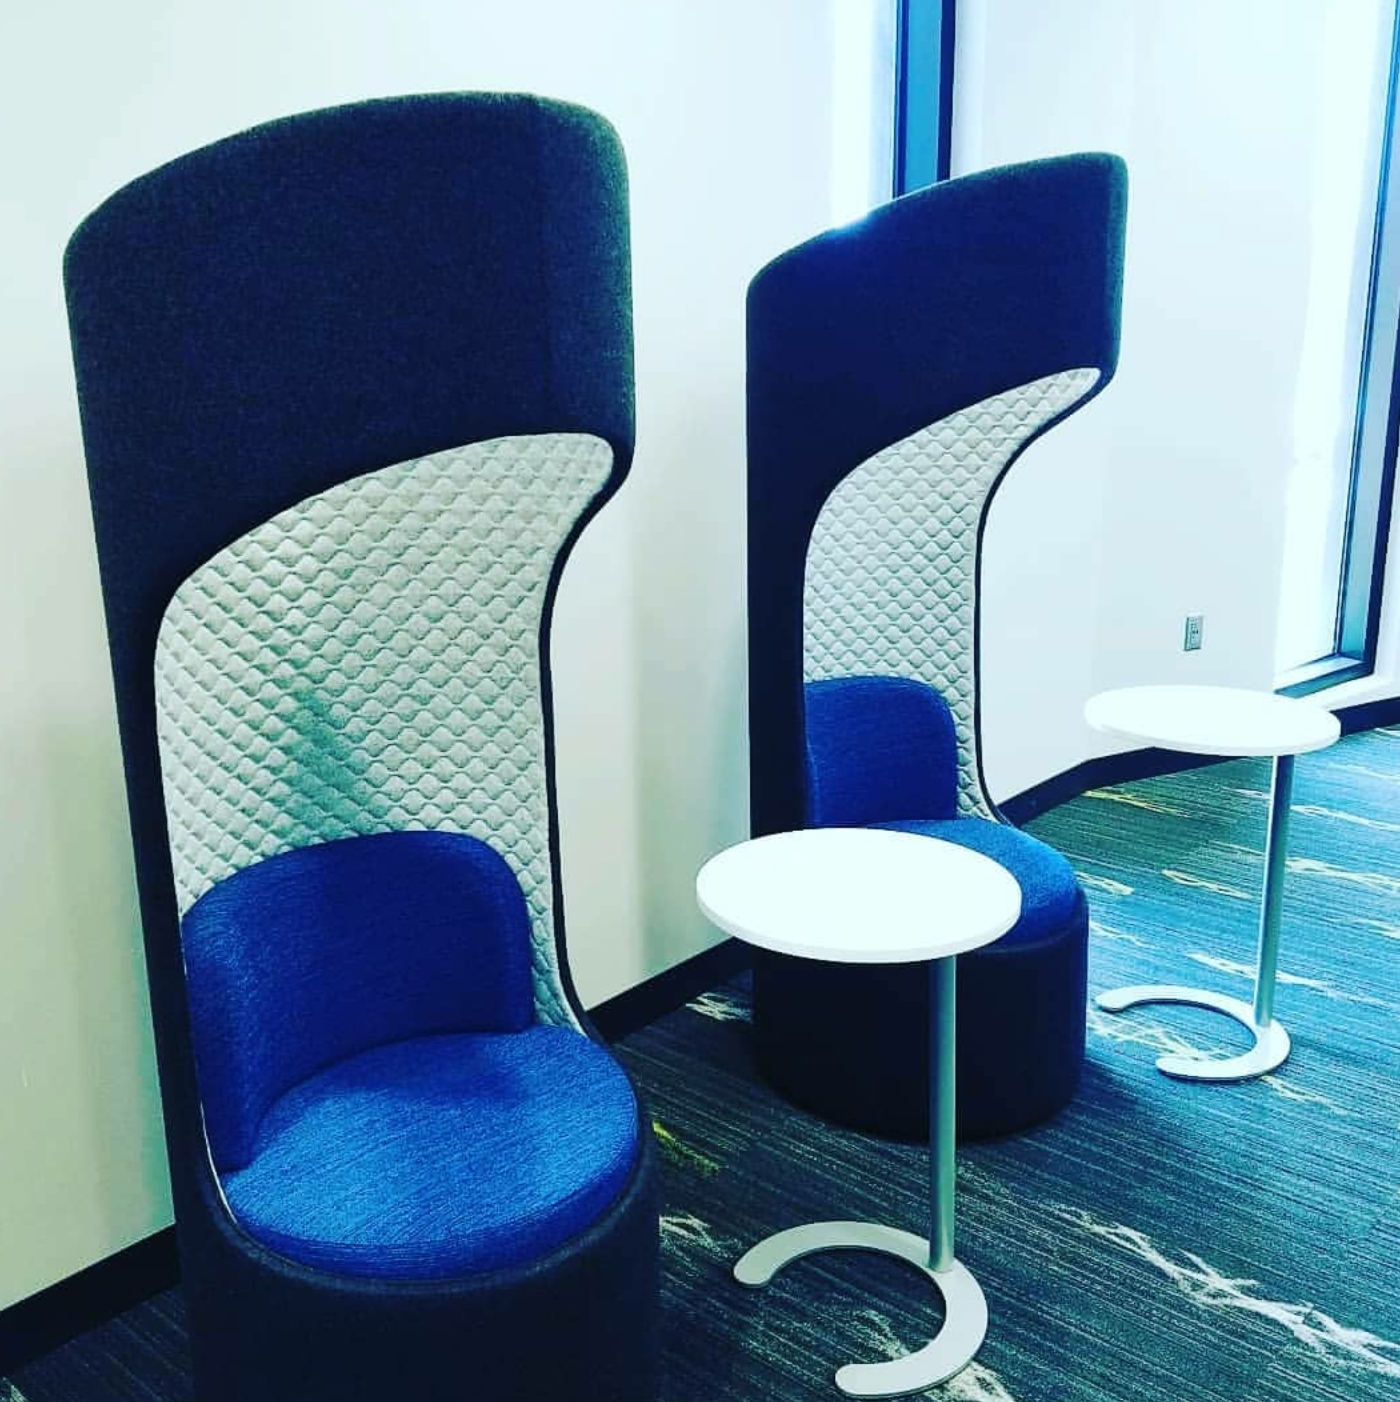 Pod chairs in RTP library.